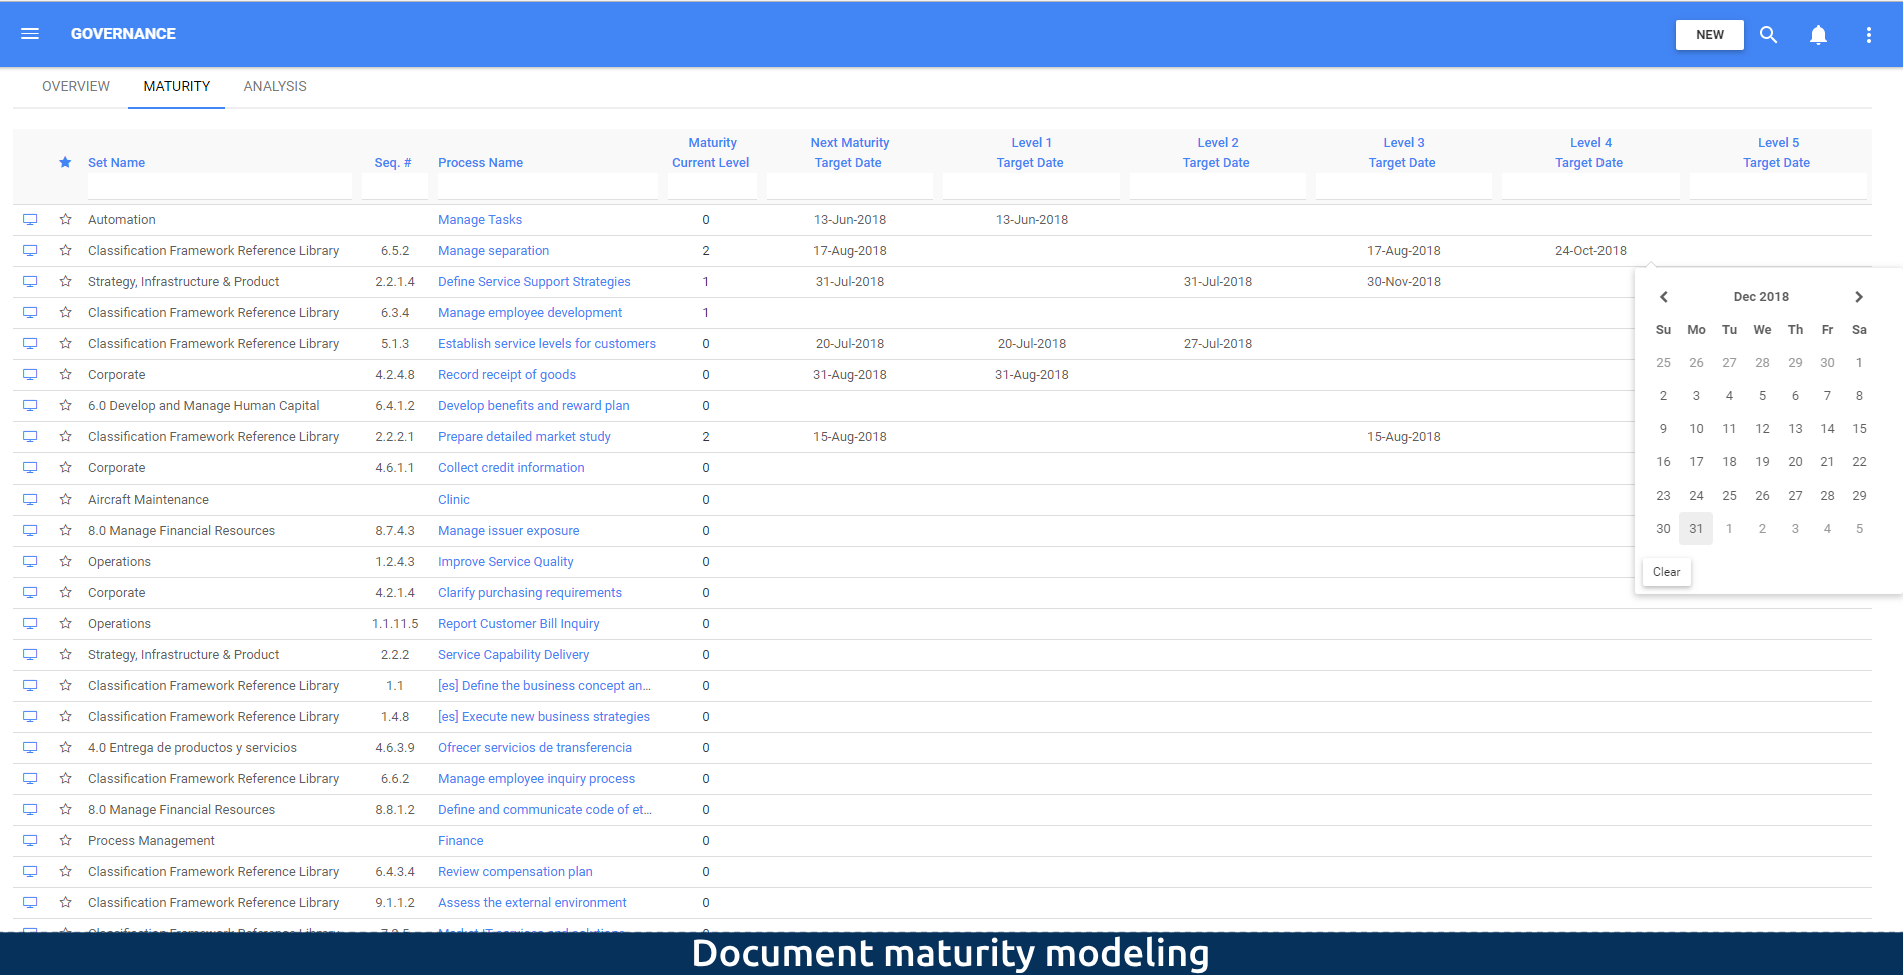 Document maturity modeling